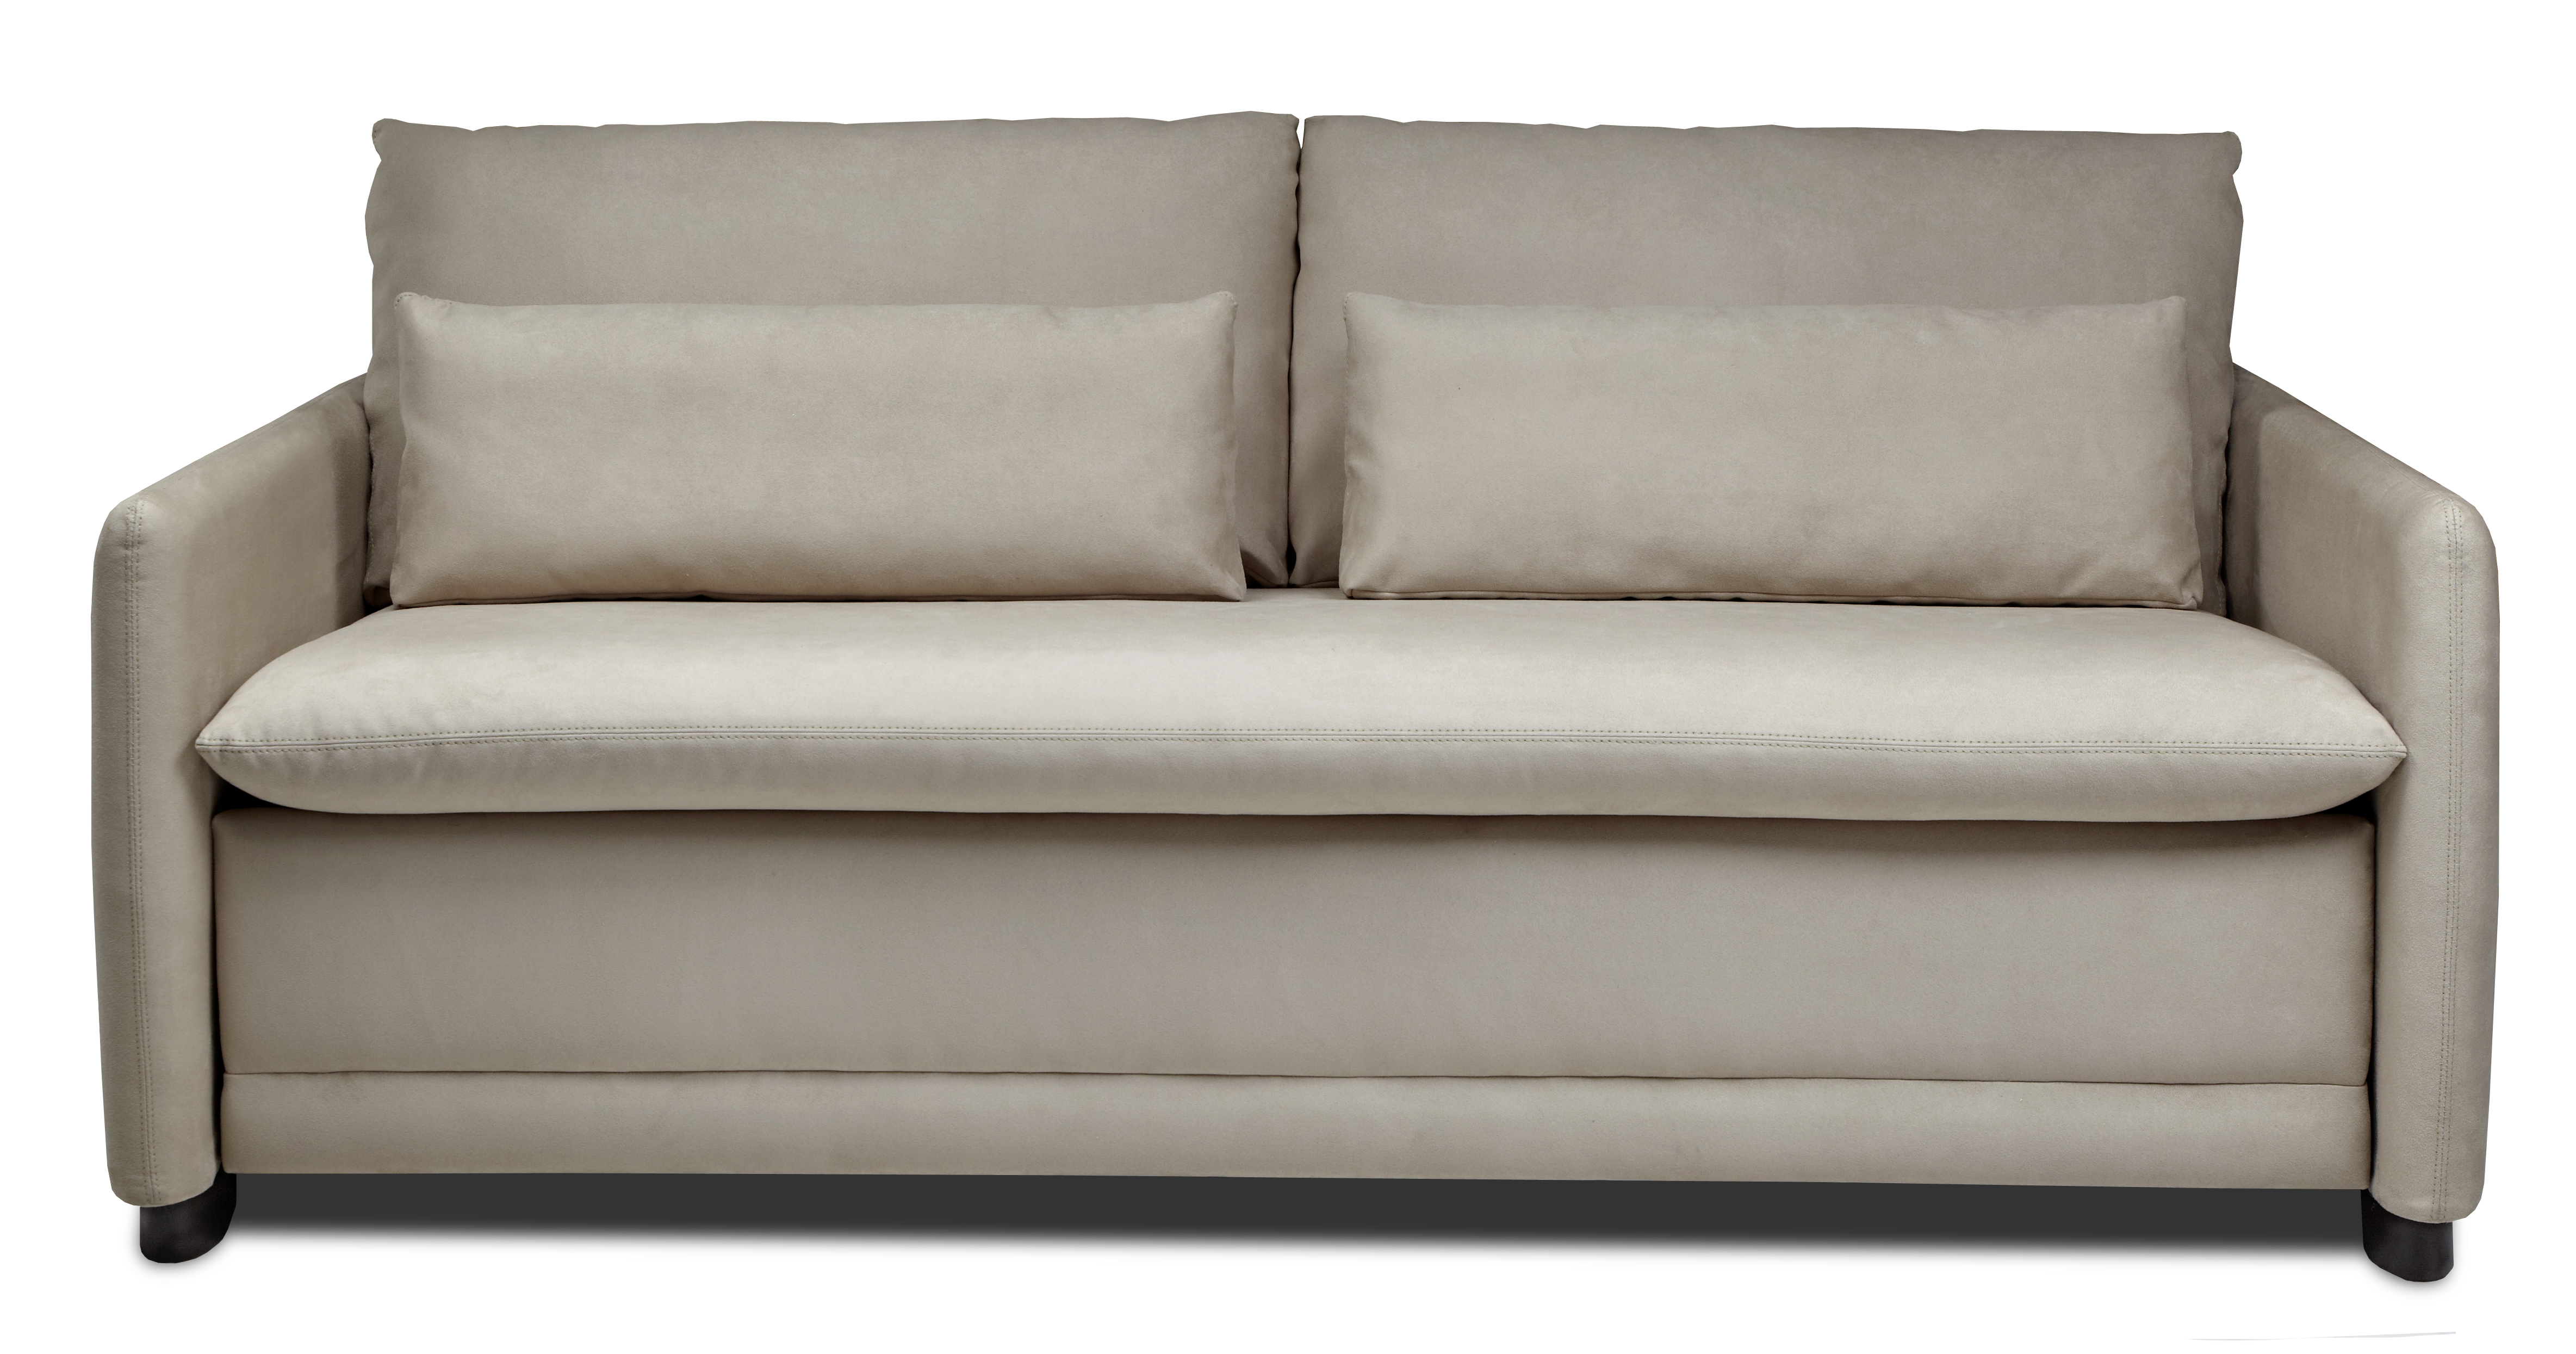 hailey the hailey is pure comfort in a sleek design generous seating soft arms and layered pillows create a welcoming retreat